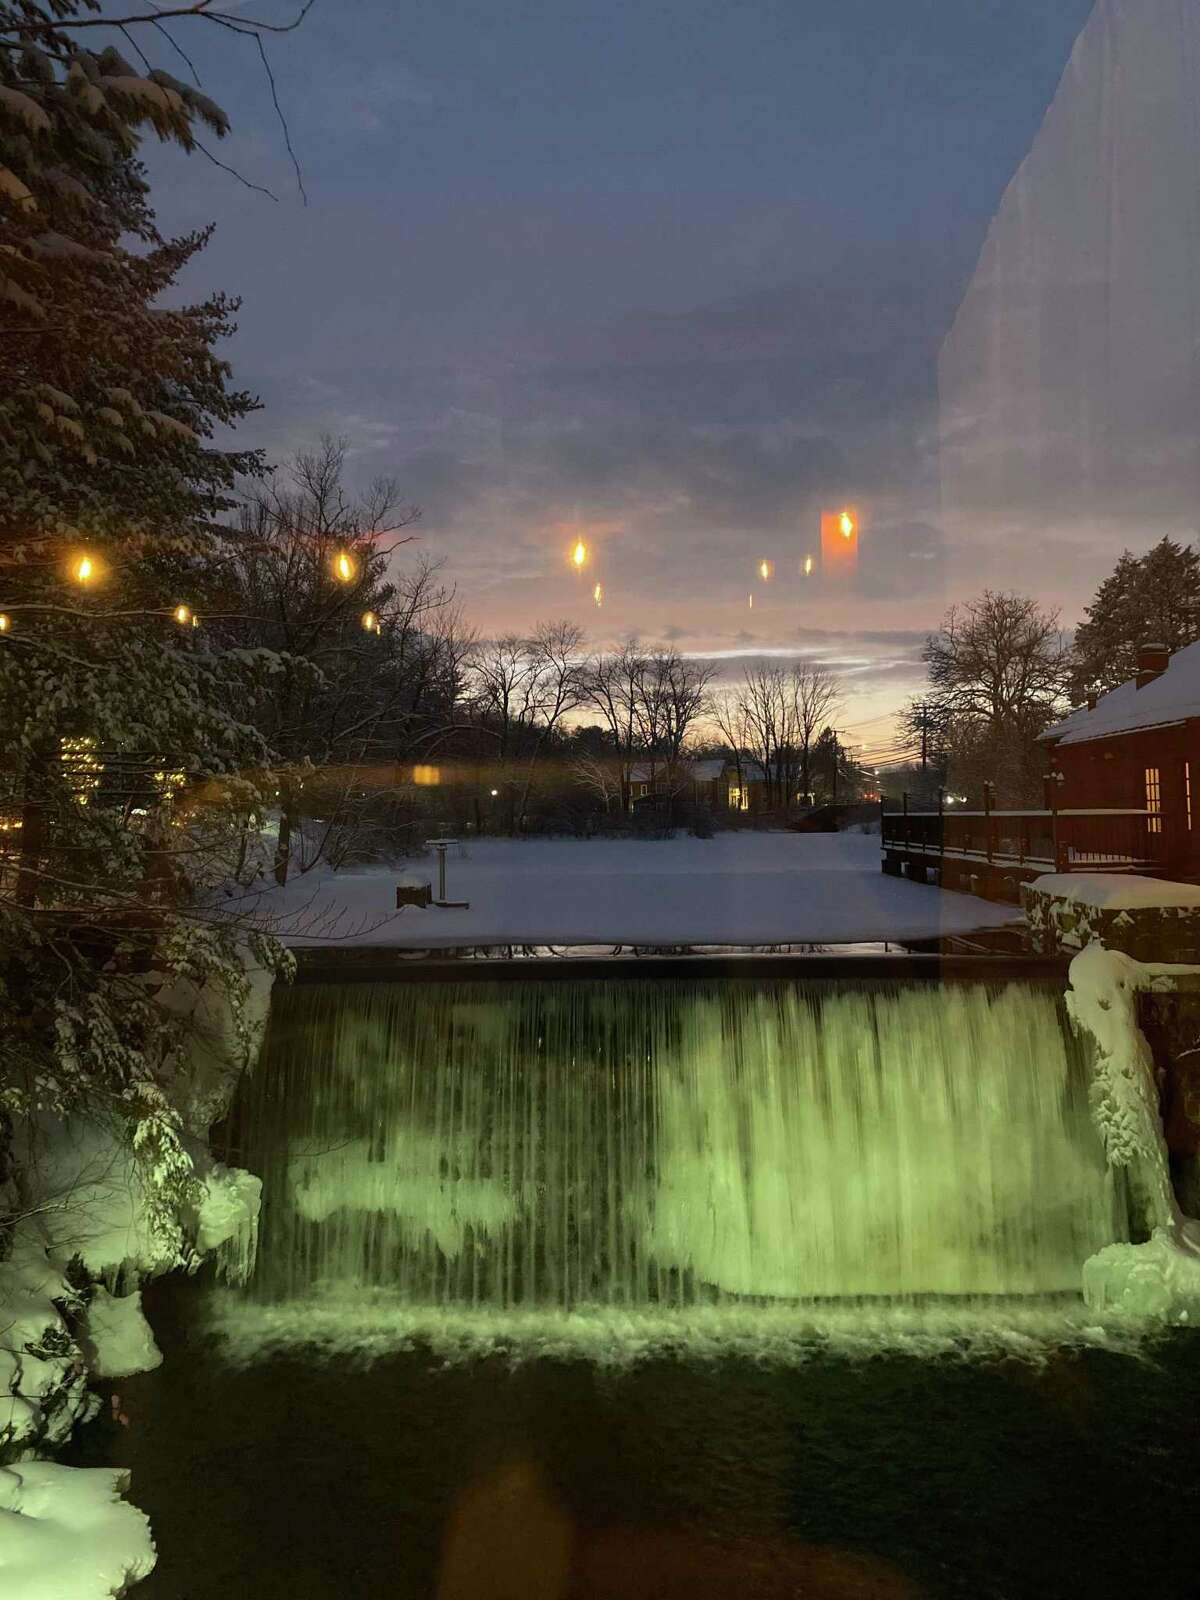 A view of Millwright's waterfall from the outdoor